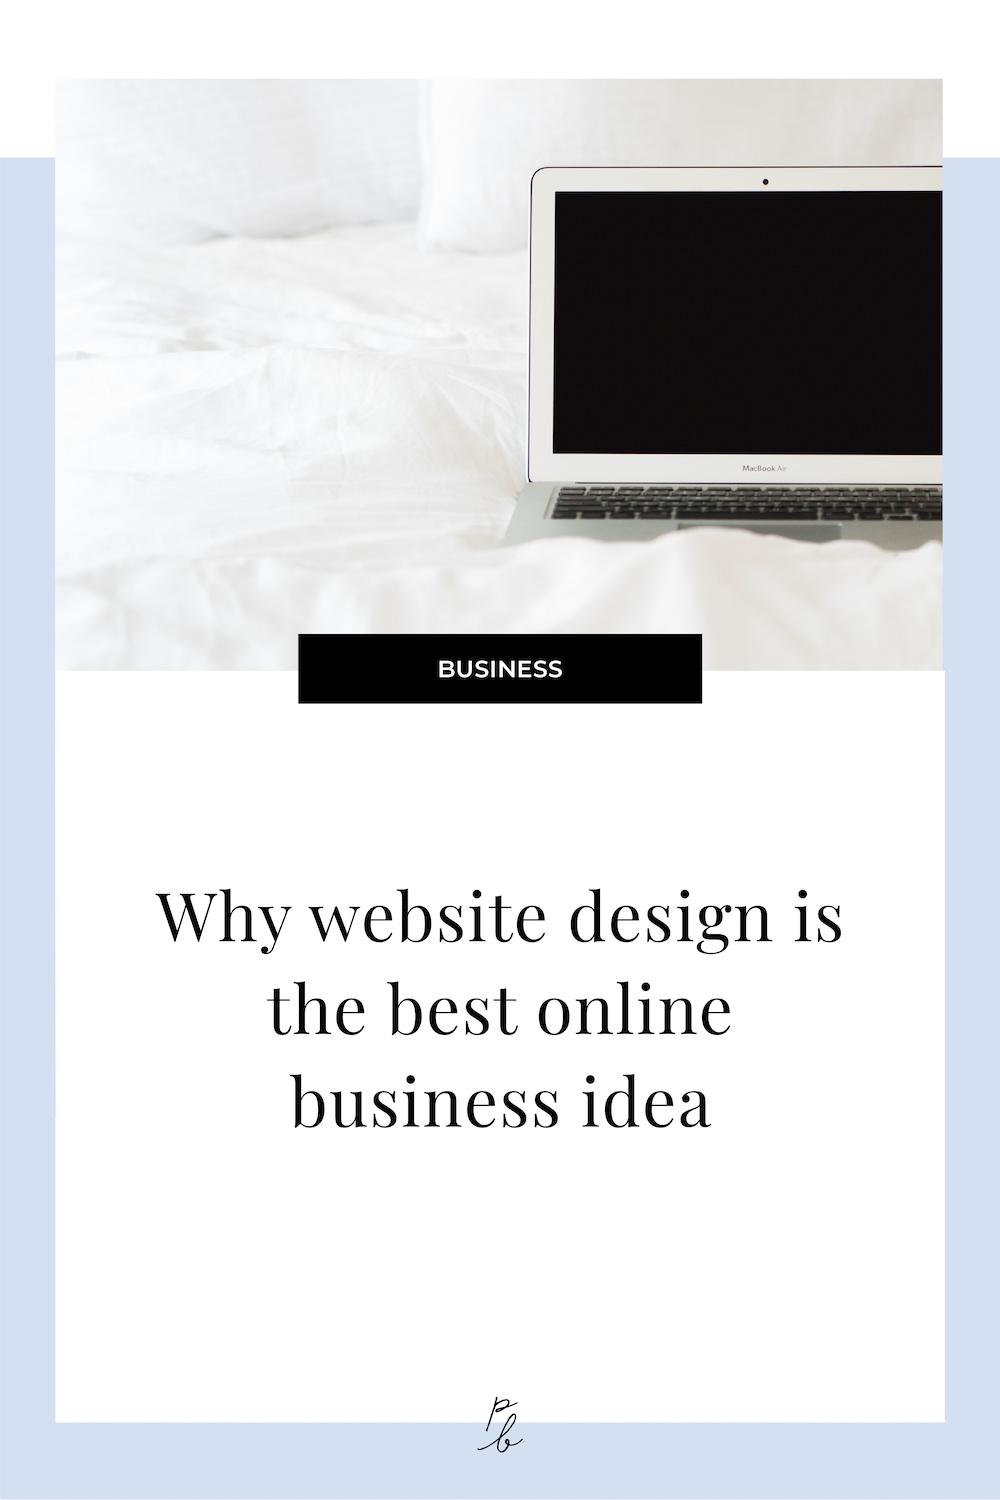 Why website design is the best online business idea.jpg